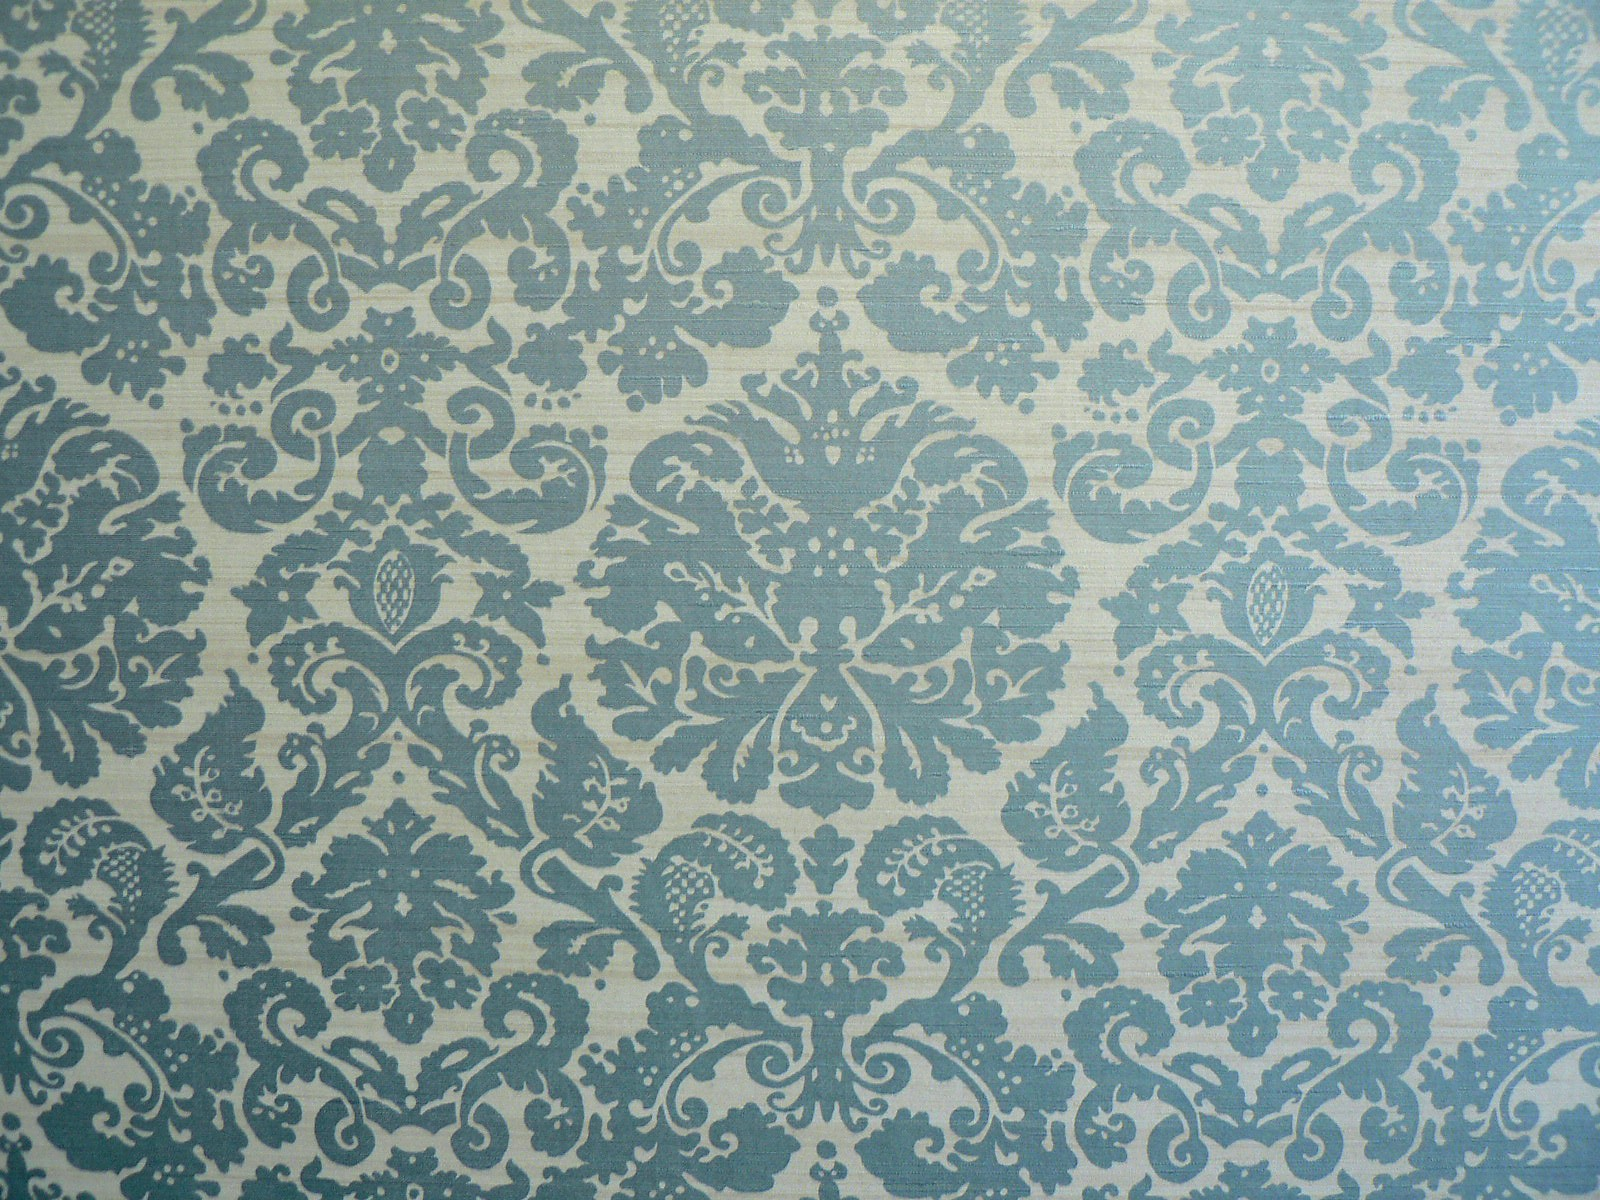 Vintage Pattern Backgrounds